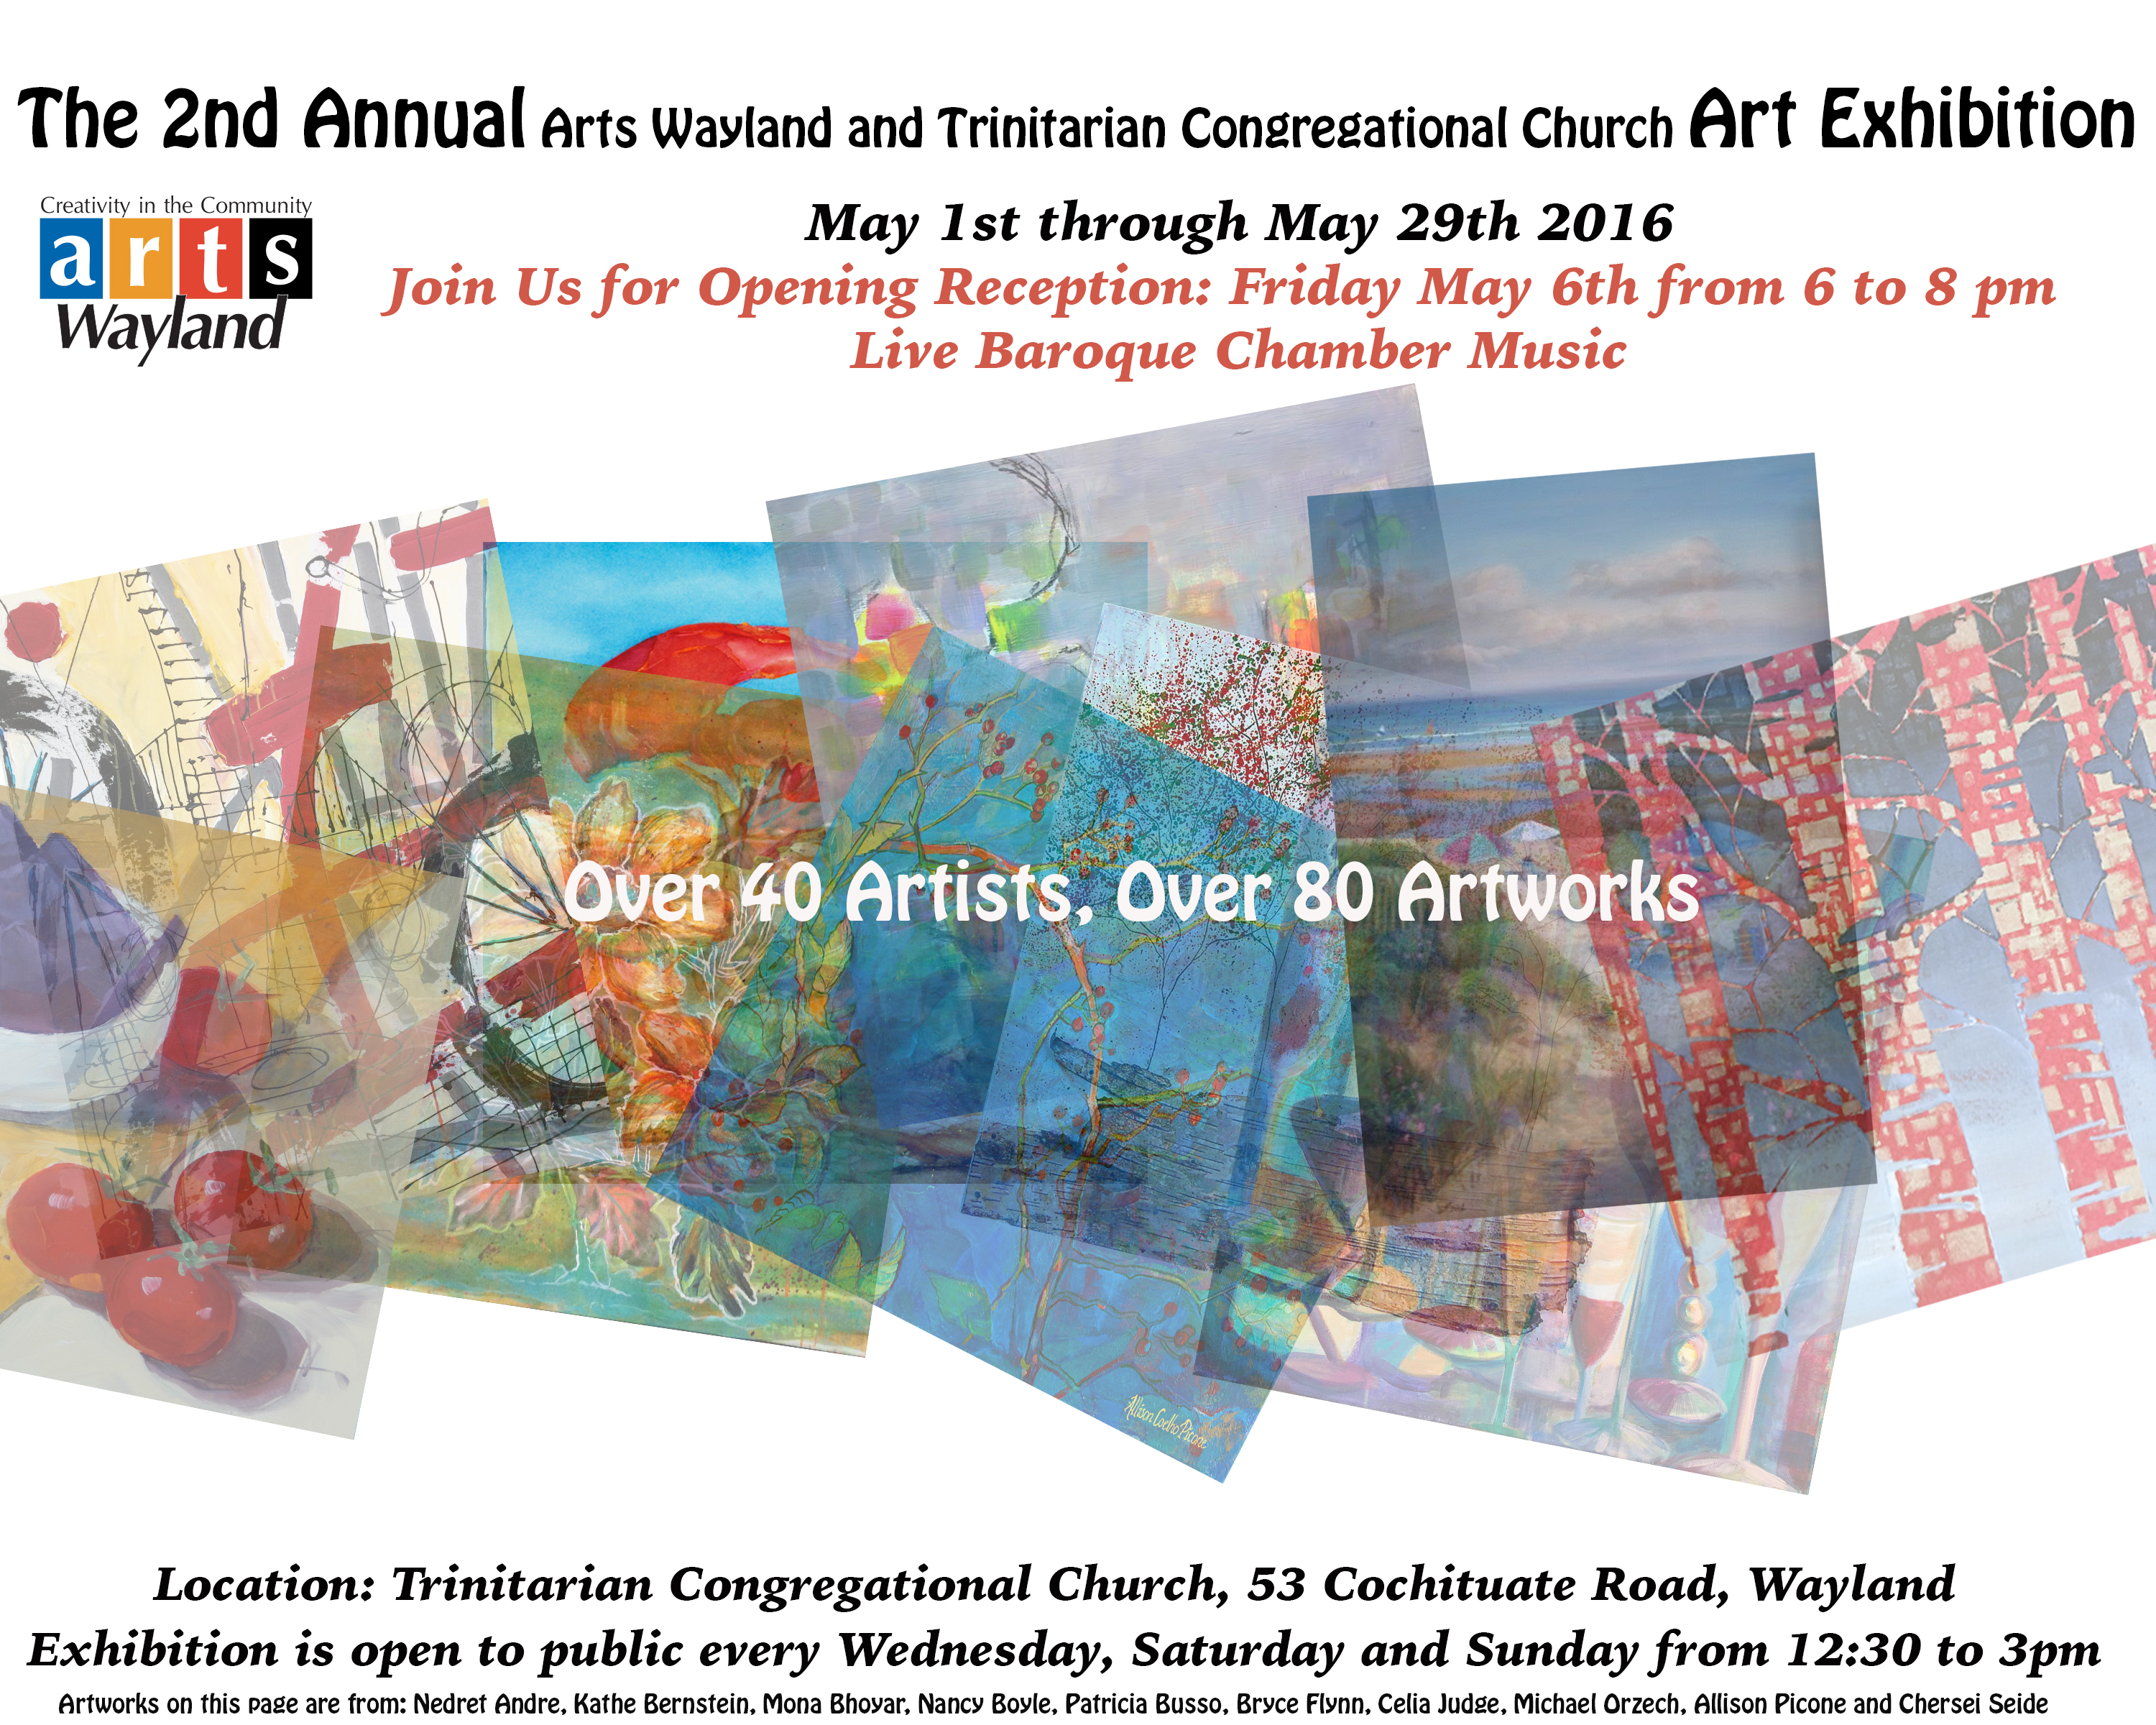 Art exhibits waylandenews 2nd annual arts wayland and tcc art exhibition may 1 29 fandeluxe Choice Image